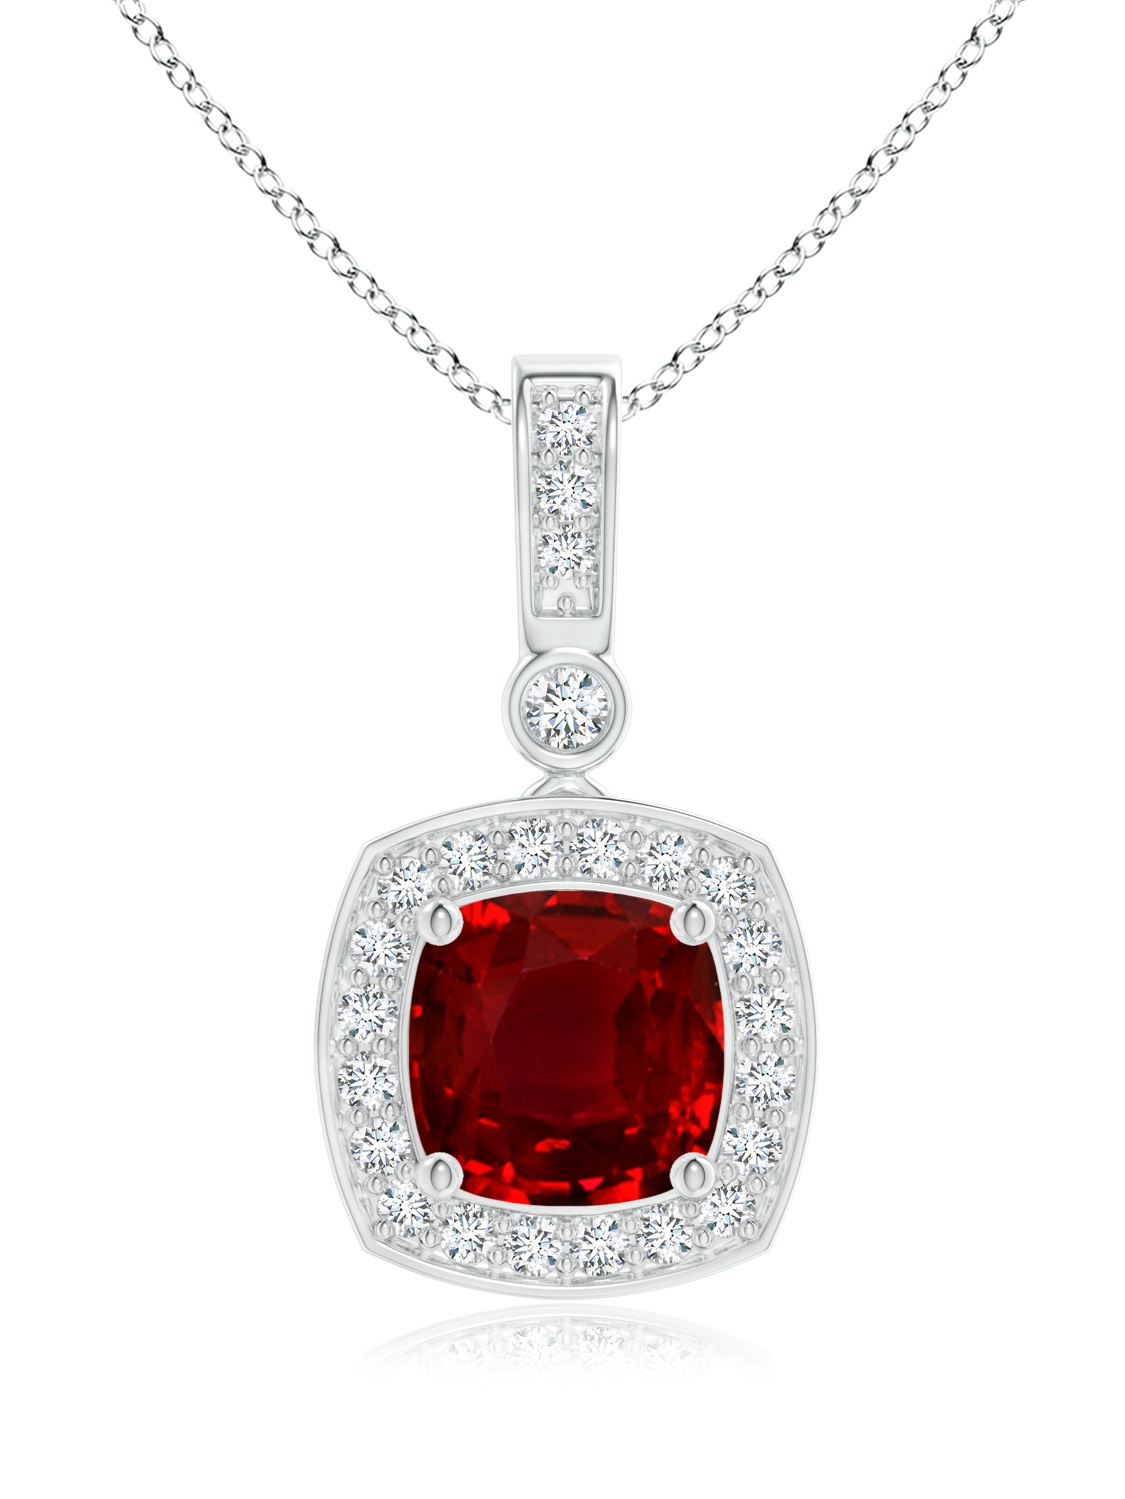 July Birthstone Pendant Necklaces Diamond Halo Vintage Cushion Cut Ruby Necklace Pendant in 950 Platinum (6mm Ruby)... by Angara.com